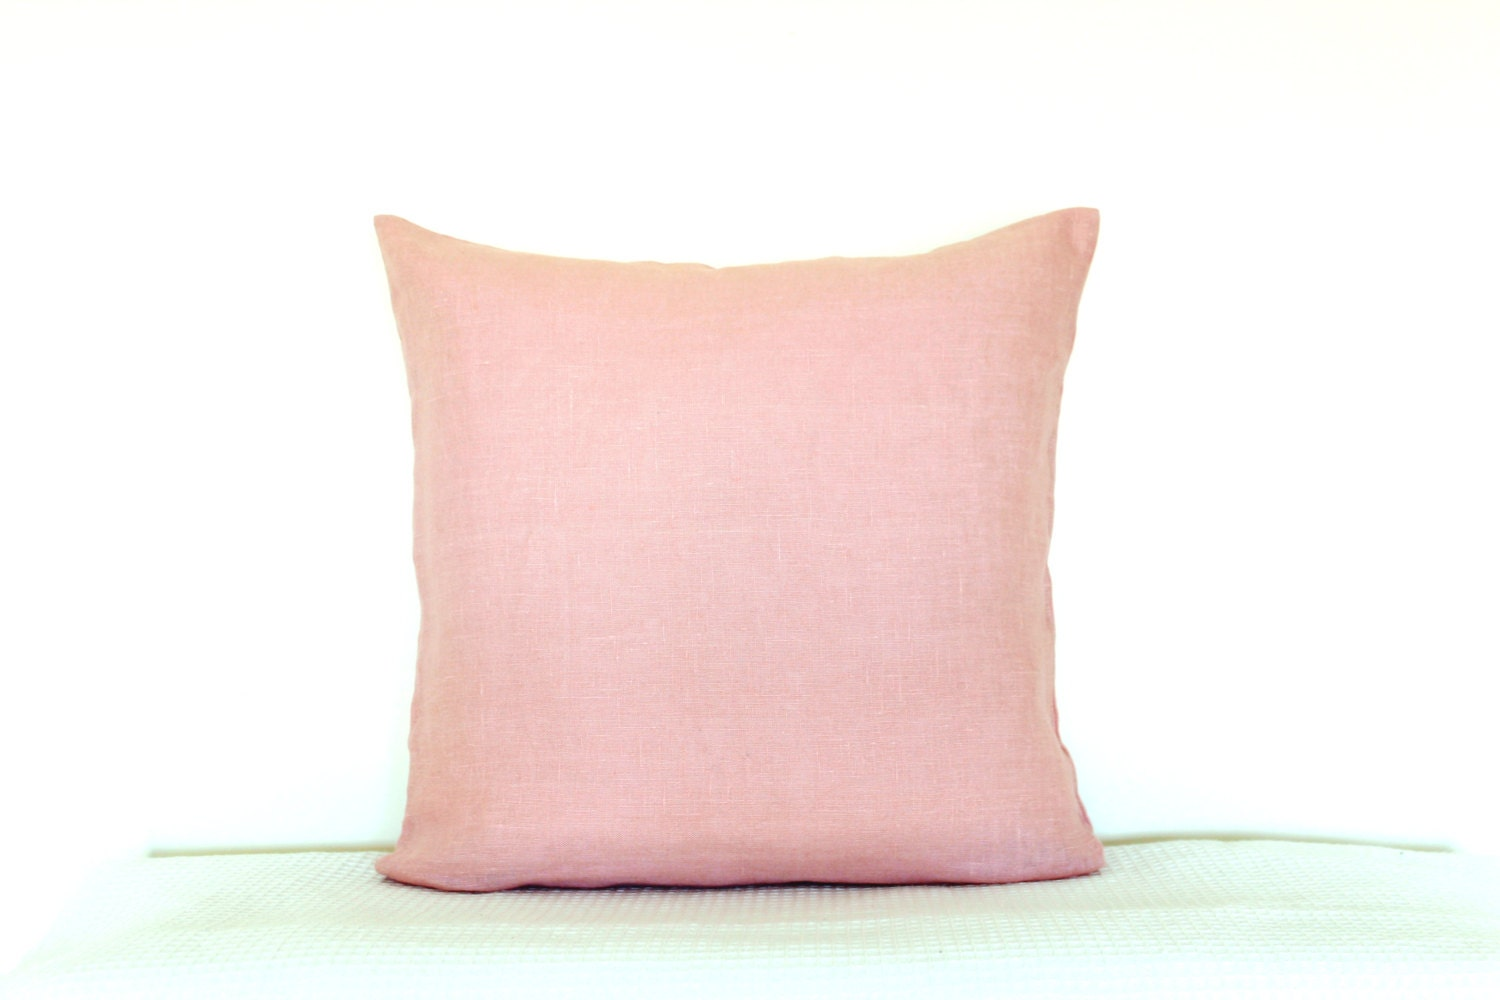 Dusty Pink linen pillow cover. Modern Spring Home decor by